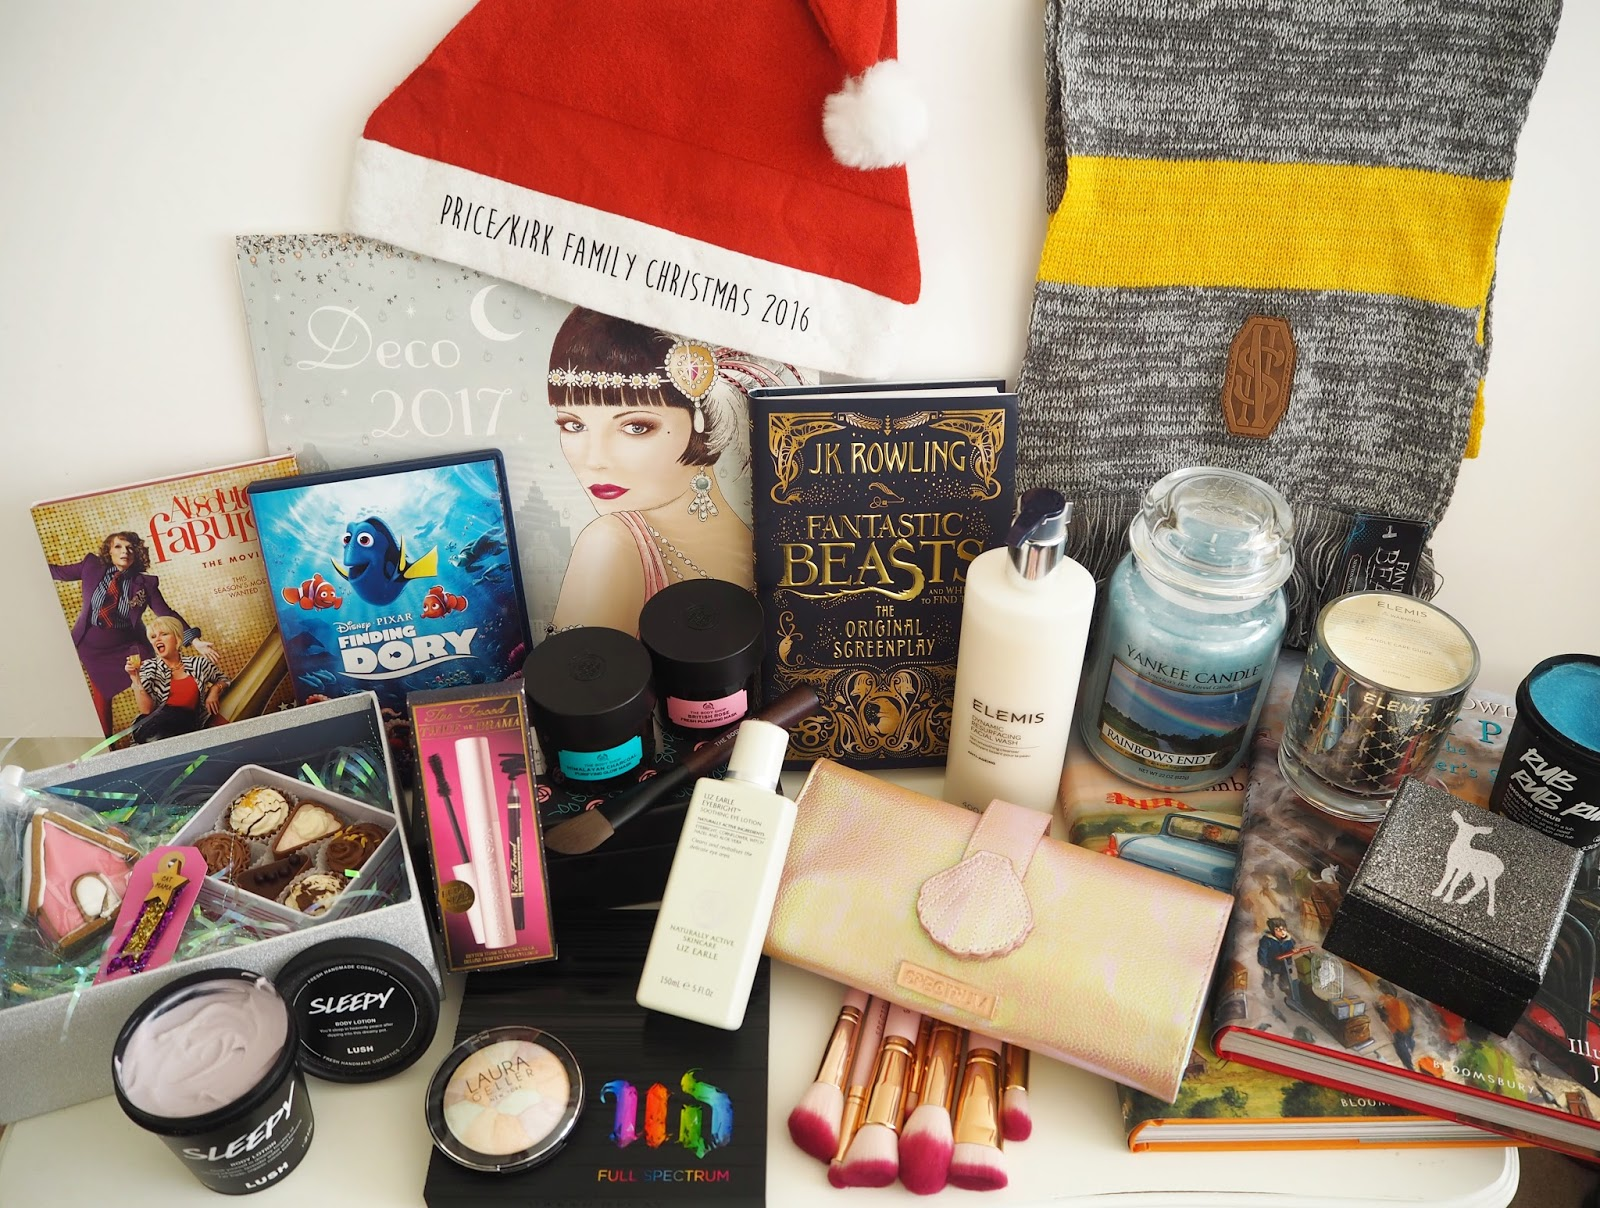 What I Got For Christmas 2016, Katie Kirk Loves, Christmas Gifts, Christmas Presents, UK Blogger, Fashion Blogger, Beauty Blogger, Lifestyle Blogger, Present Haul, Santa Hat